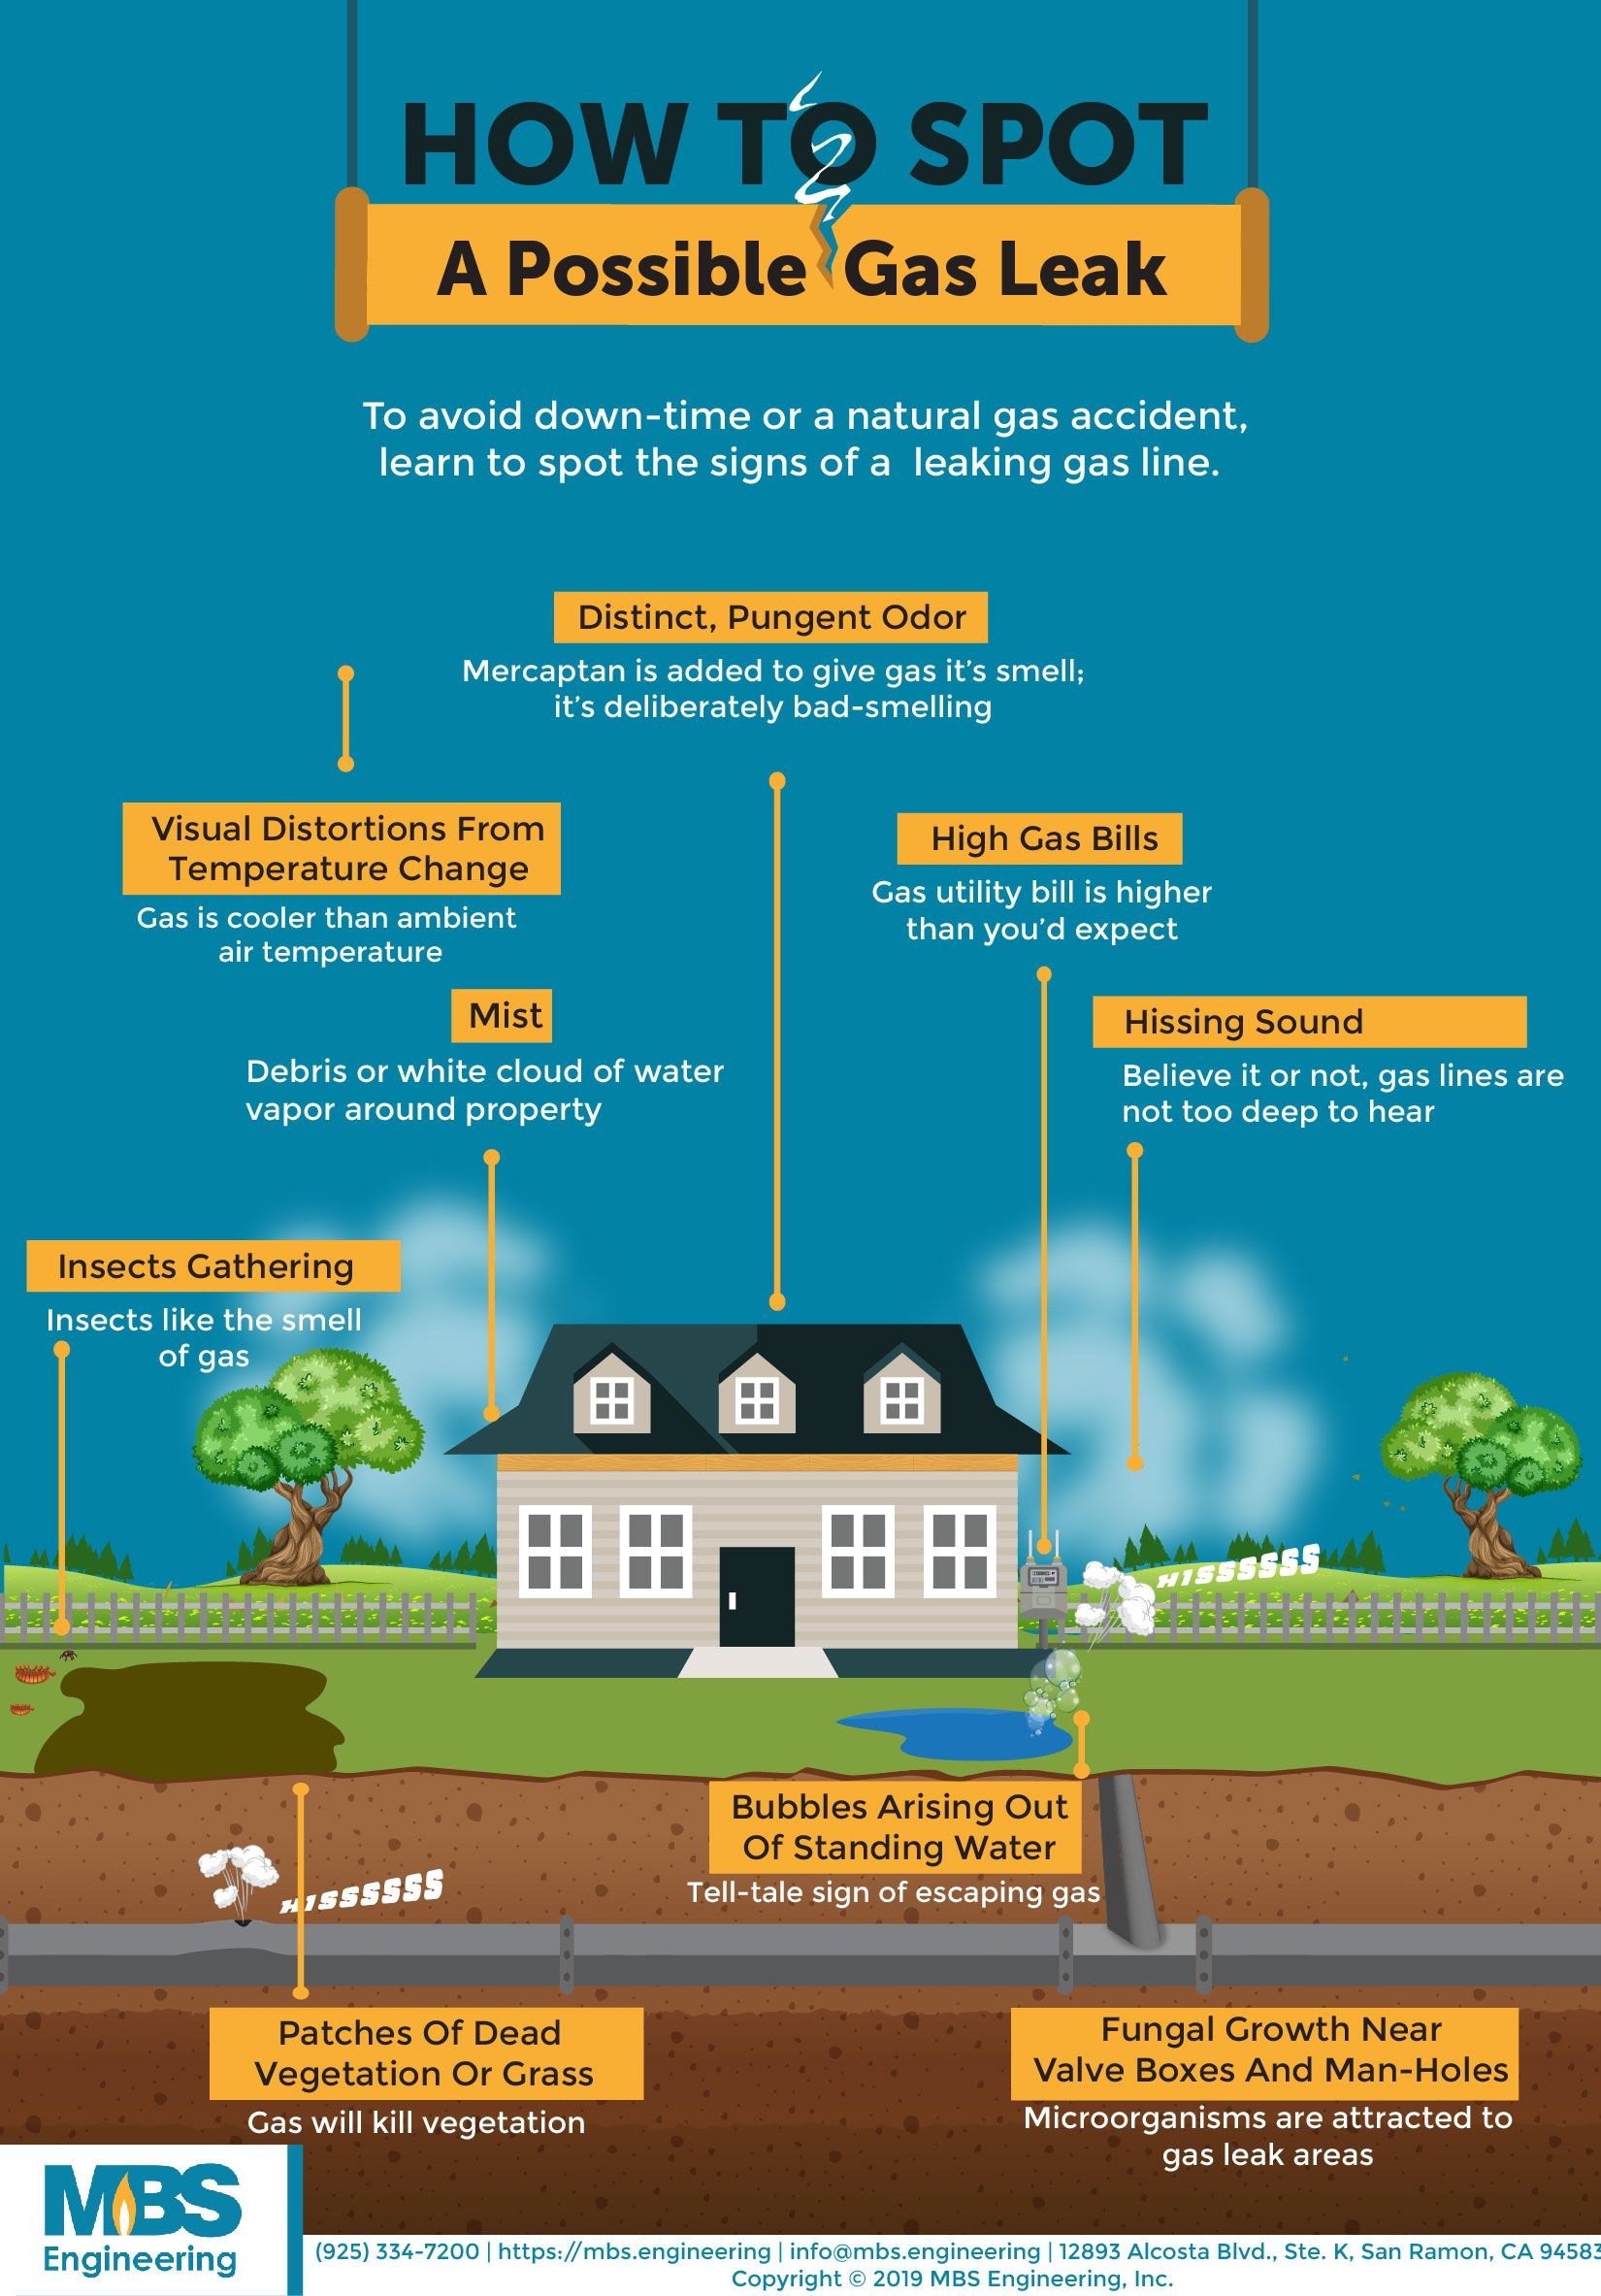 spot gas leak Images are infographics for MBS Engineering